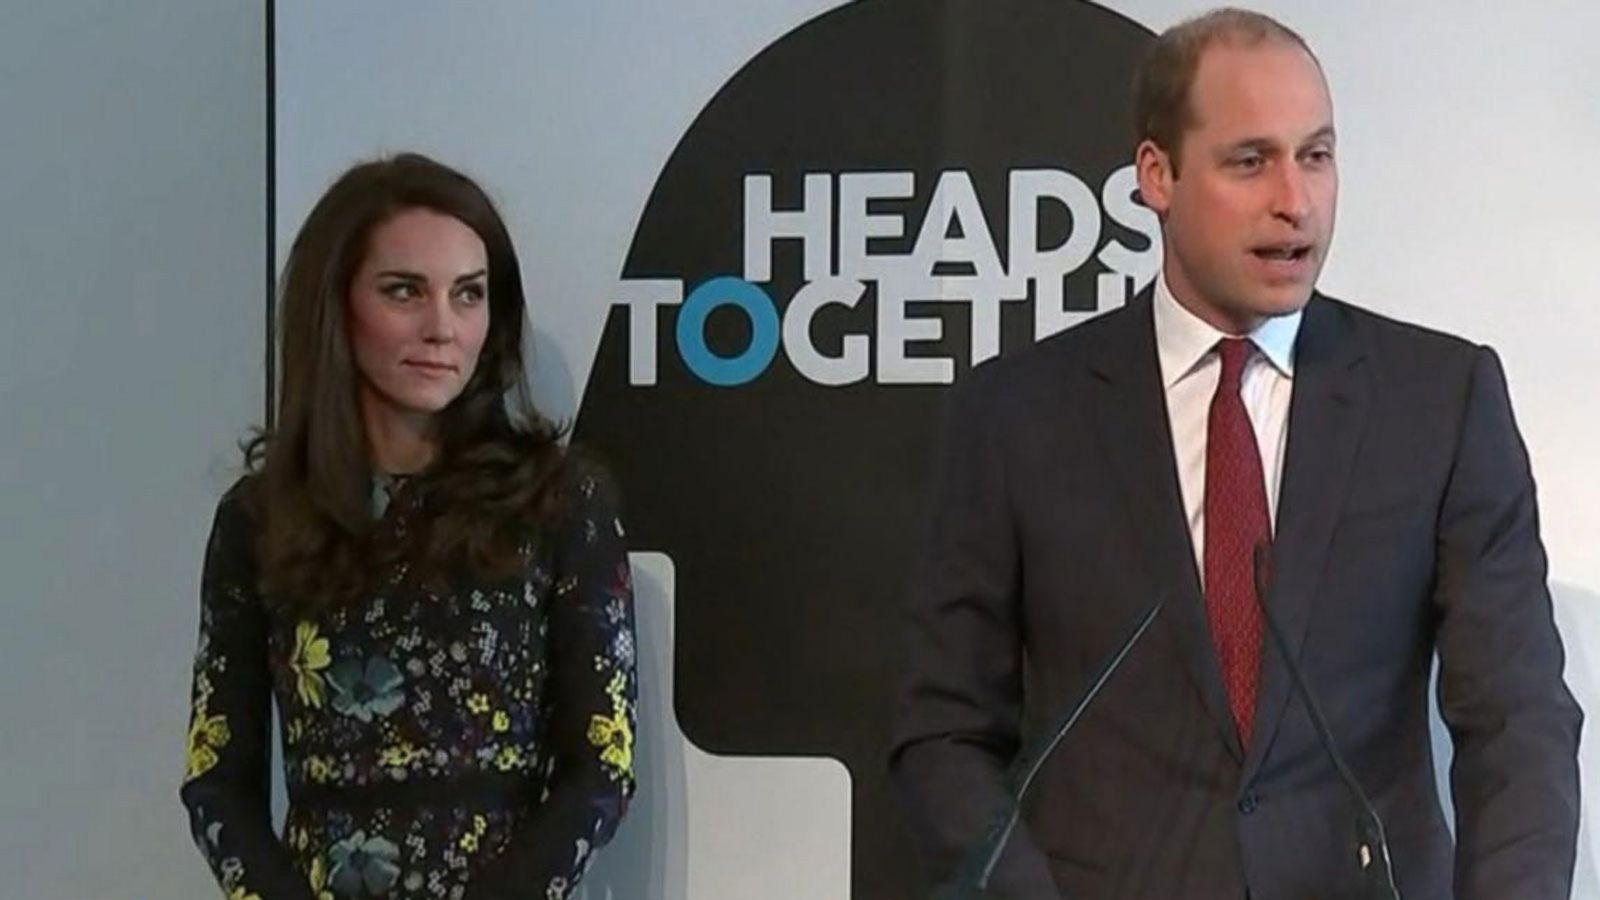 VIDEO: Royals Put Spotlight on Mental Health Issues